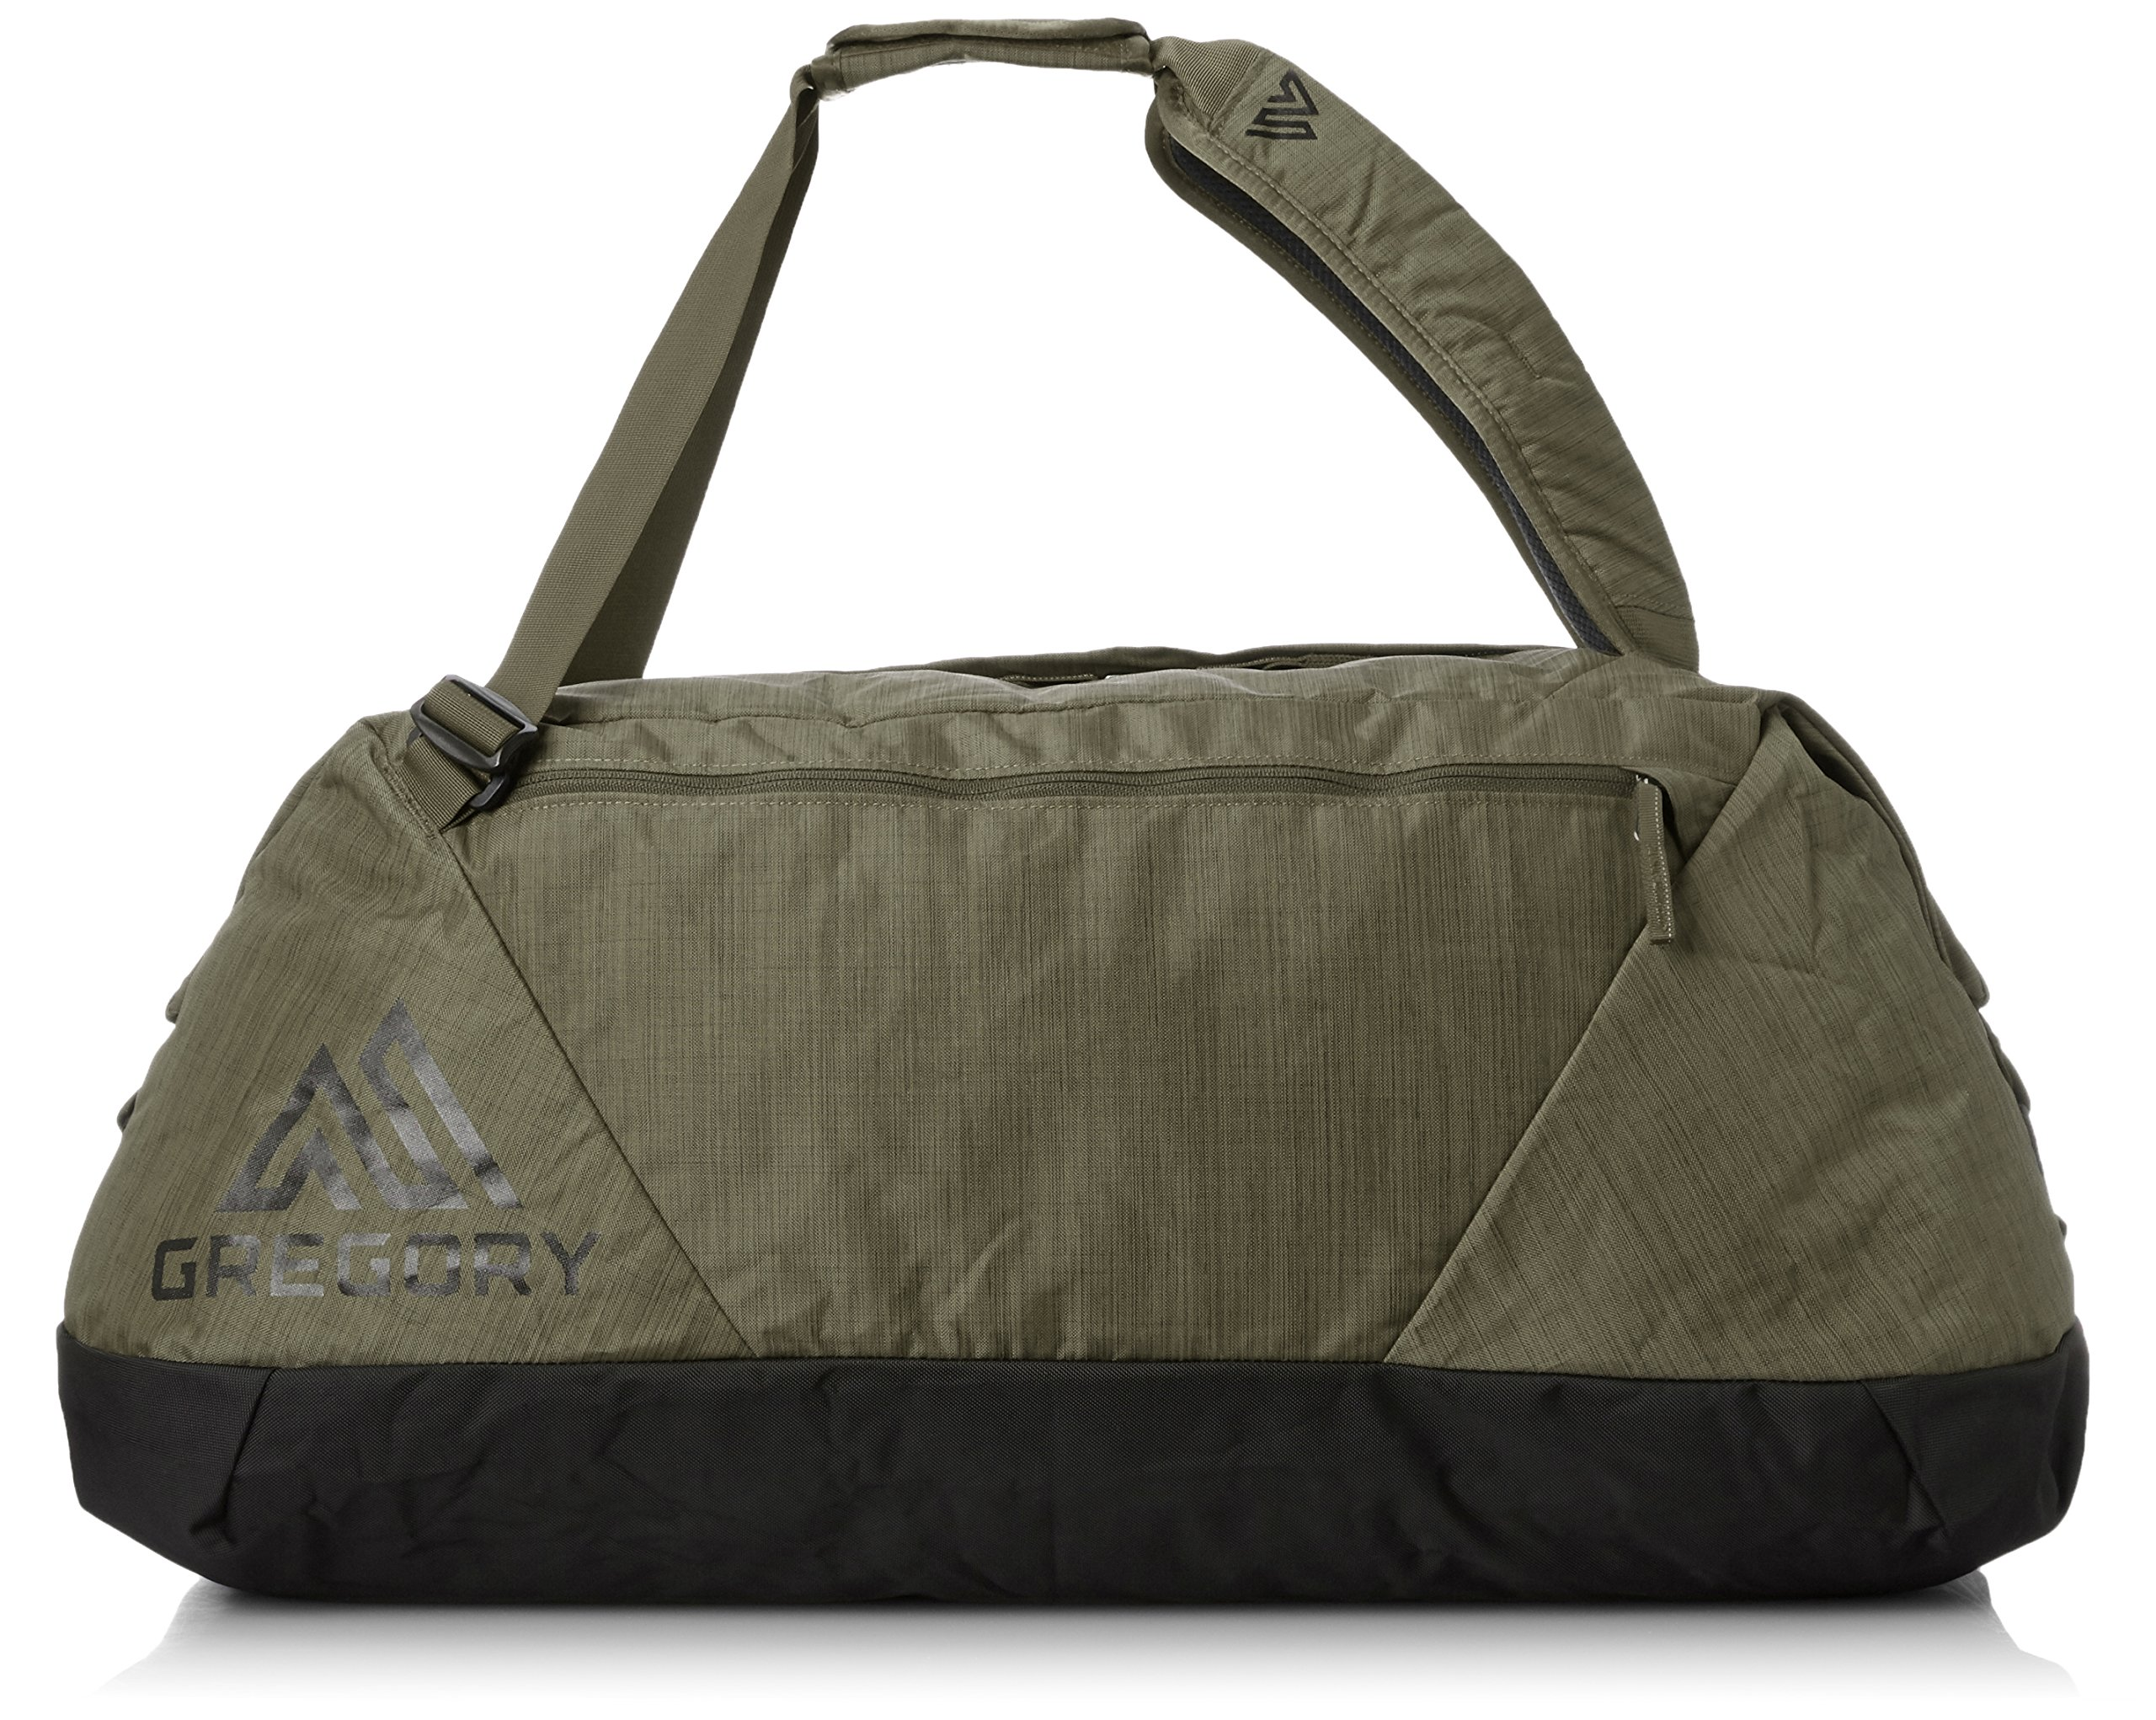 Gregory Mountain Products Stash Duffel Bag | Travel, Expedition, Storage | Durable Construction, Padded Shoulder Straps, Full Length Zipper for Easy Packing